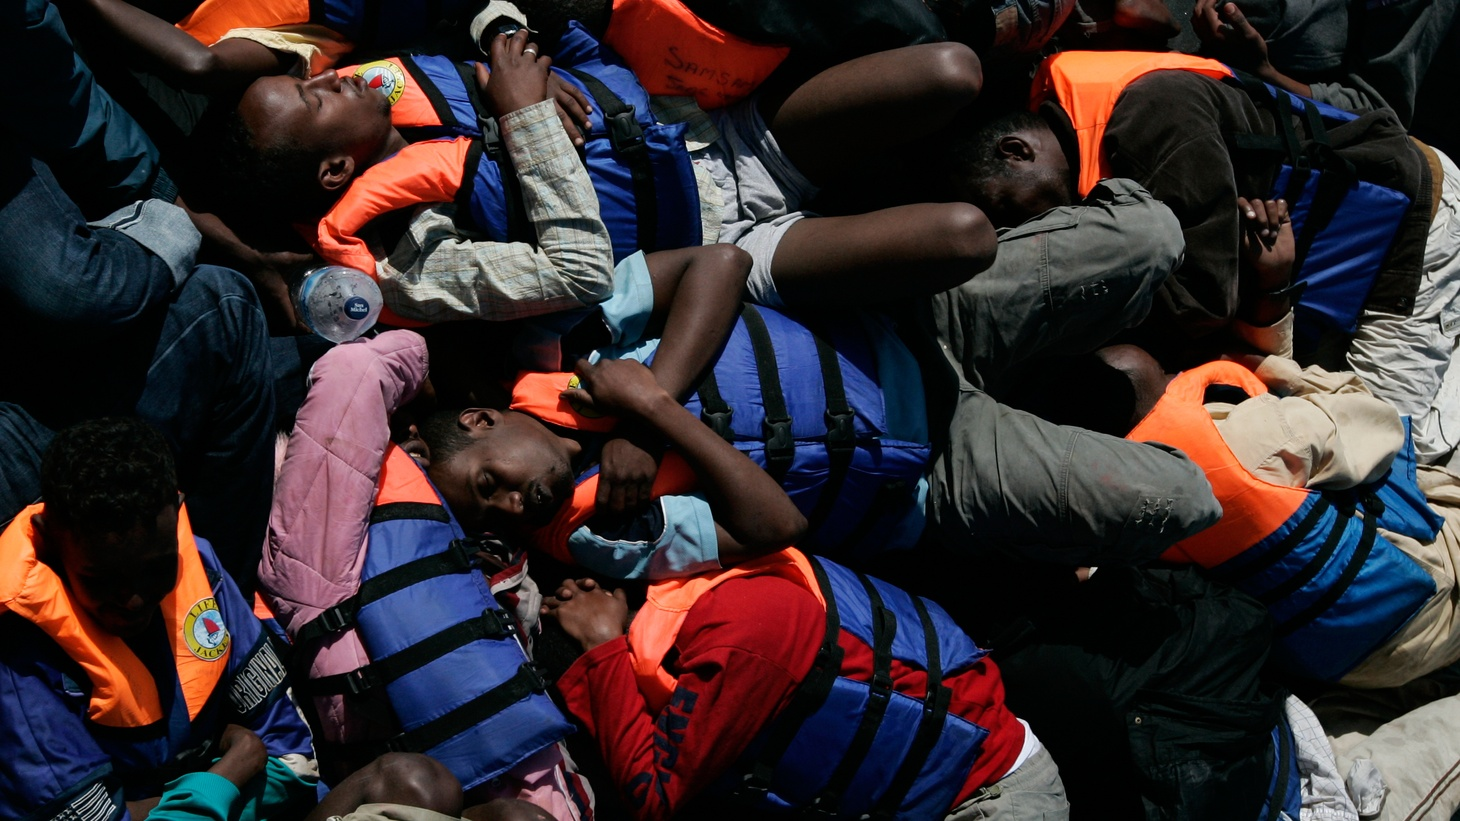 Faced with a stream of migrants from Africa and the Middle East, European leaders want to reduce human trafficking and end the spectacle of deadly shipwrecks in the Mediterranean Sea. But controversies over immigration in EU countries make that easier said than done.